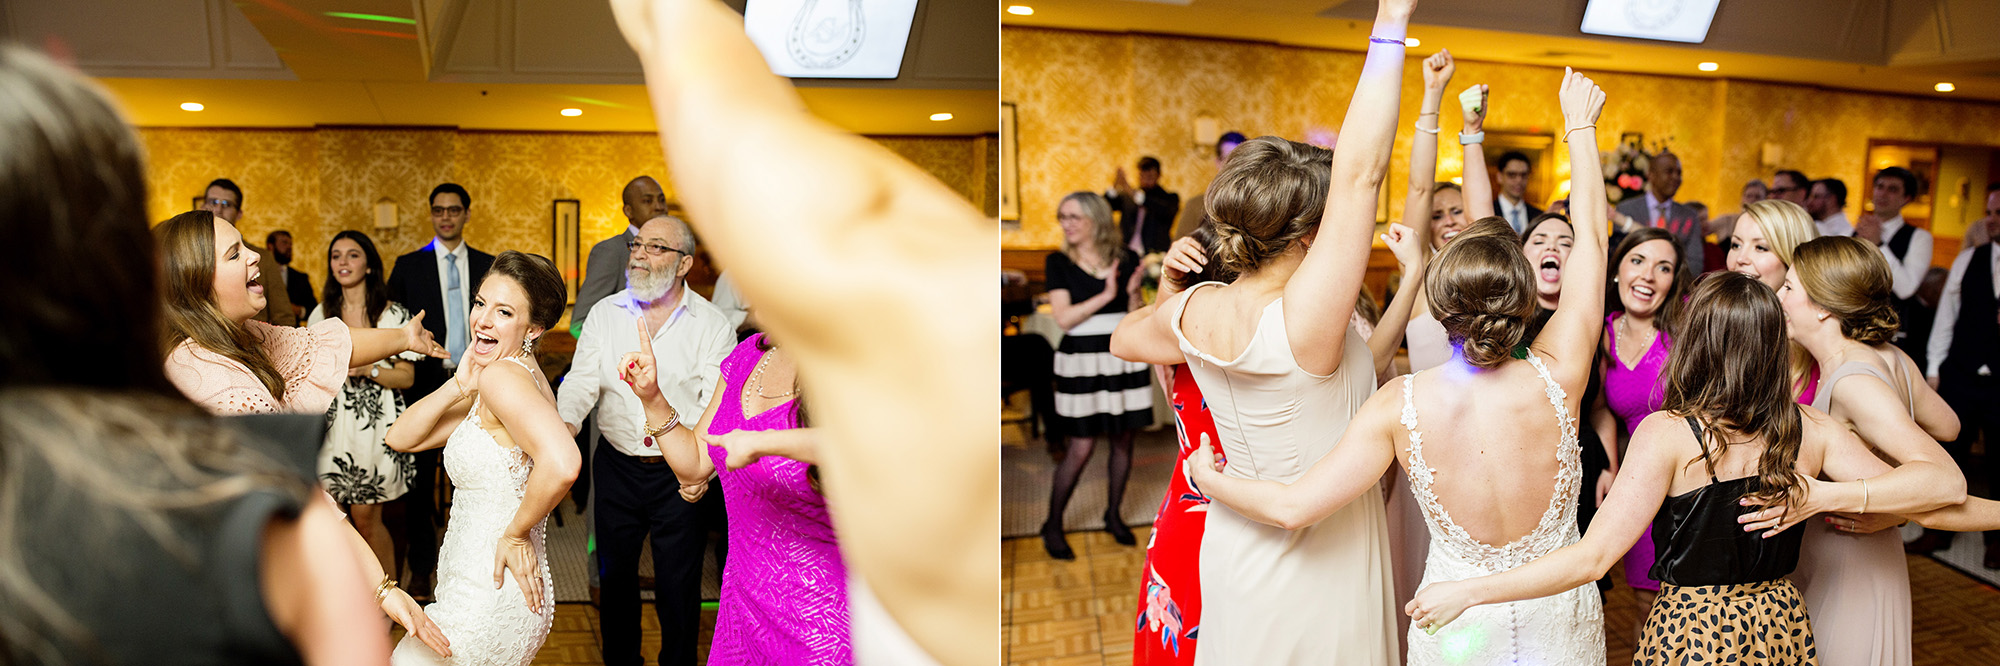 Seriously_Sabrina_Photography_Lexington_Kentucky_Downtown_Keeneland_Clubhouse_Wedding_Spitzer_151.jpg